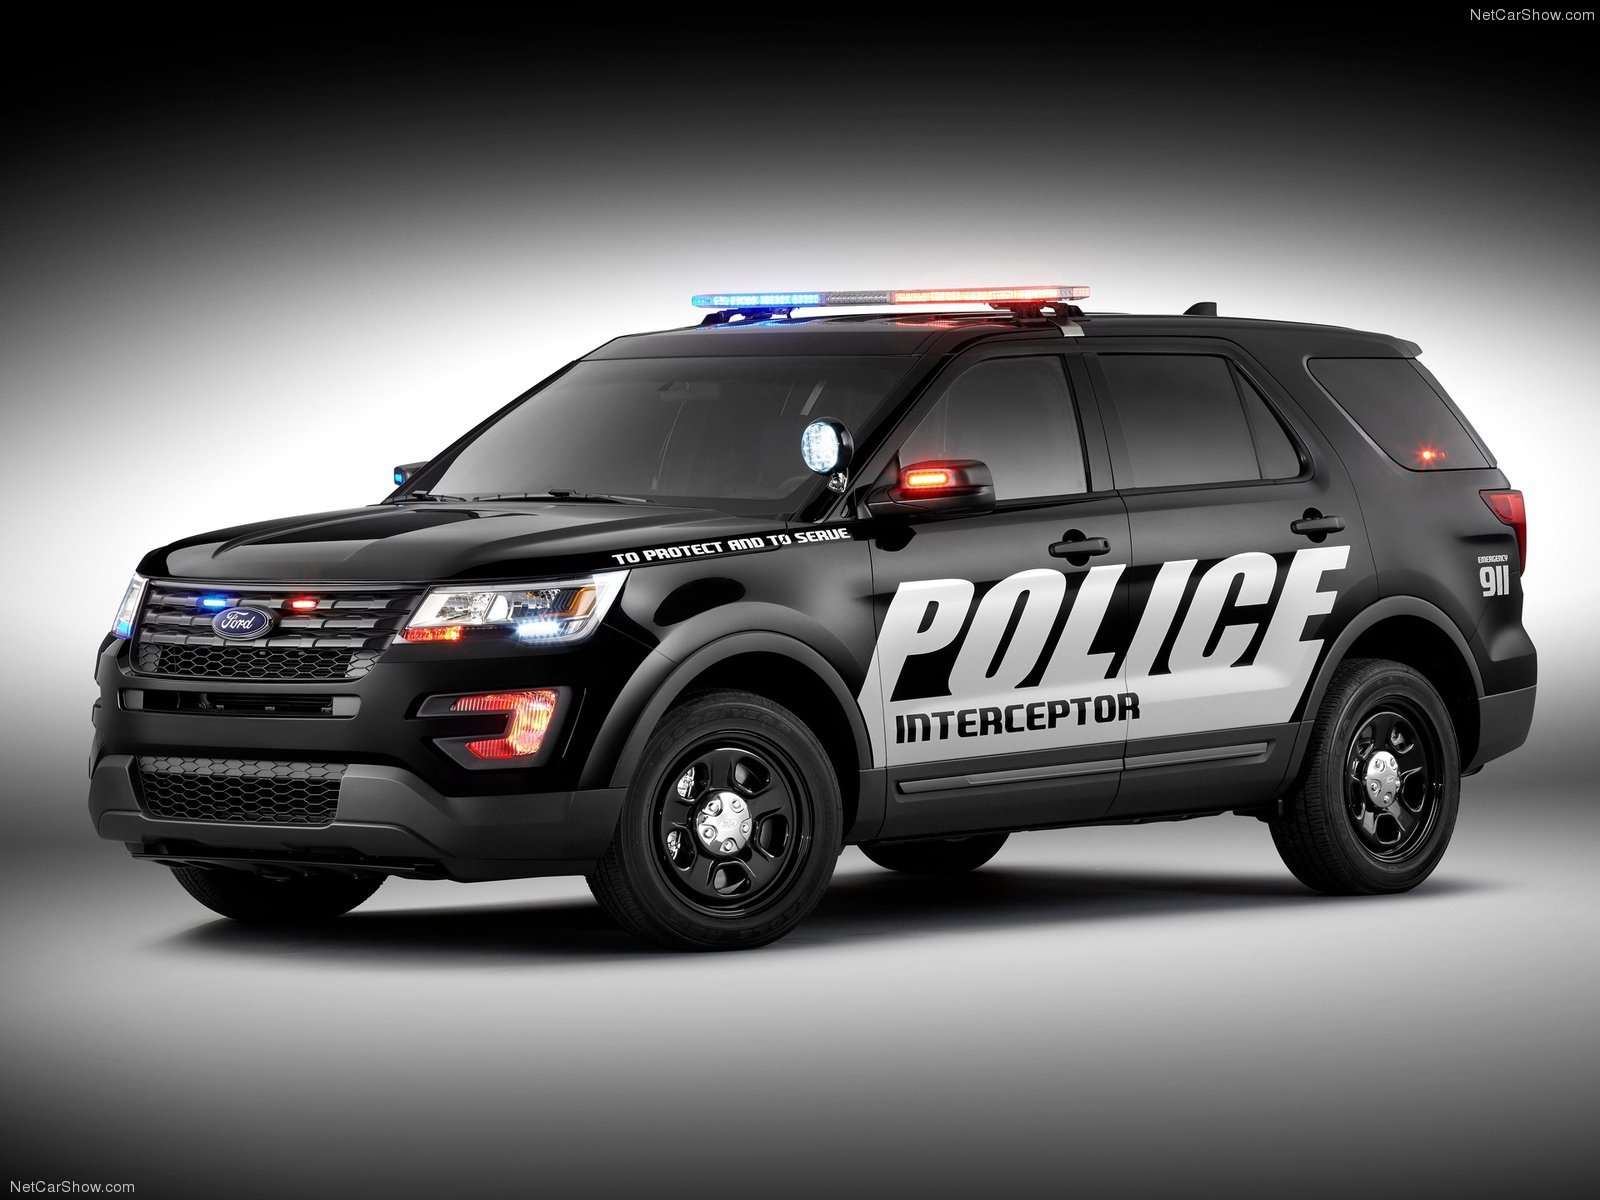 2016 Ford interceptor police utility vehicle suv wallpaper | 1600x1200 | 619464 | WallpaperUP